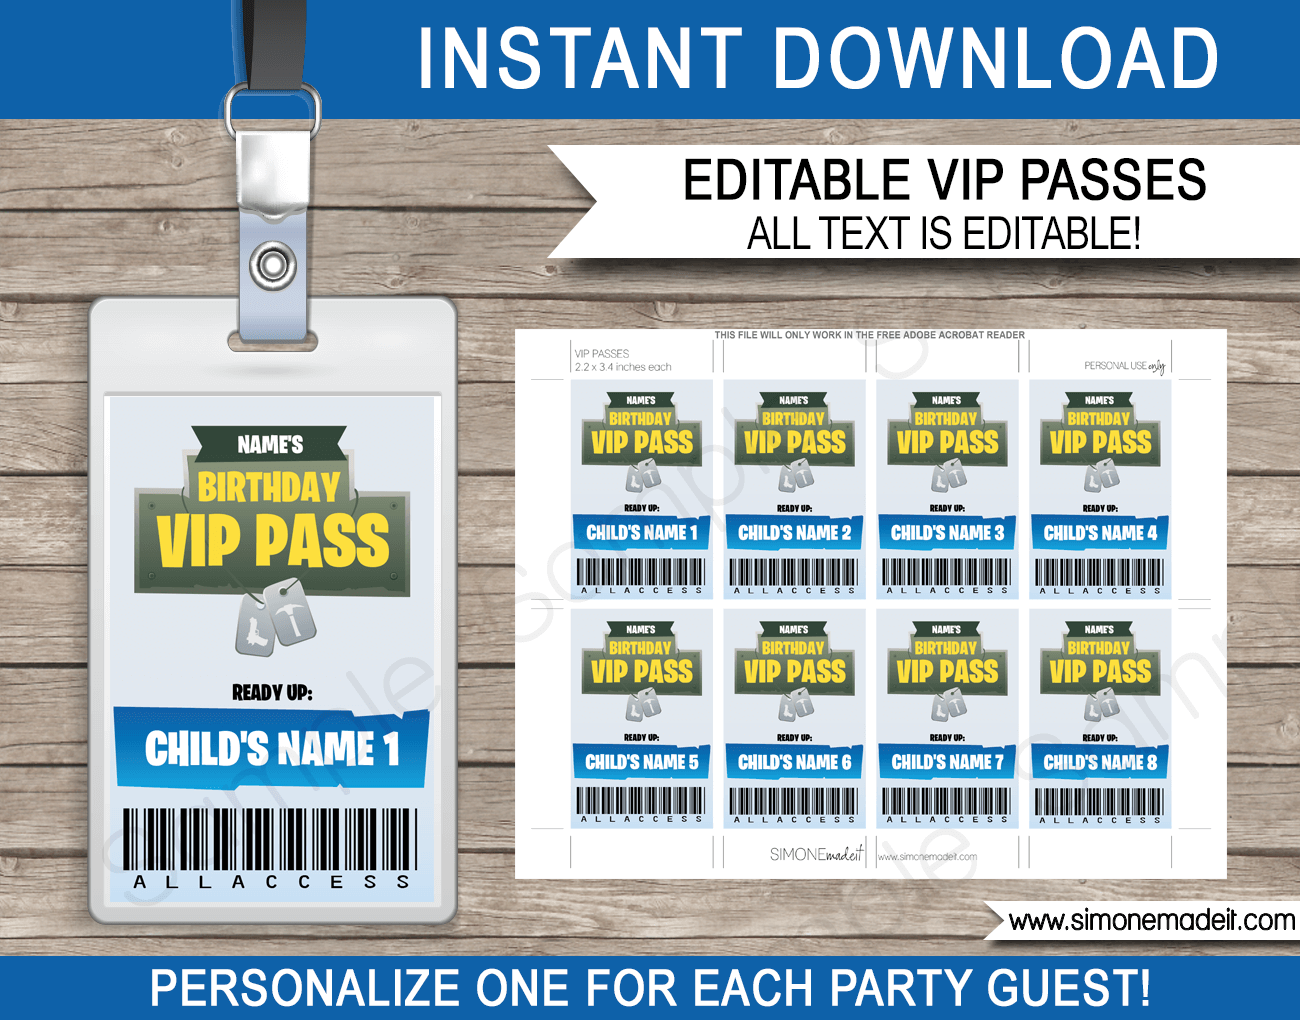 Printable Fortnite Party VIP Passes | Video Game Birthday Party | Fortnite Theme | Printable Template with editable text | INSTANT DOWNLOAD via simonemadeit.com